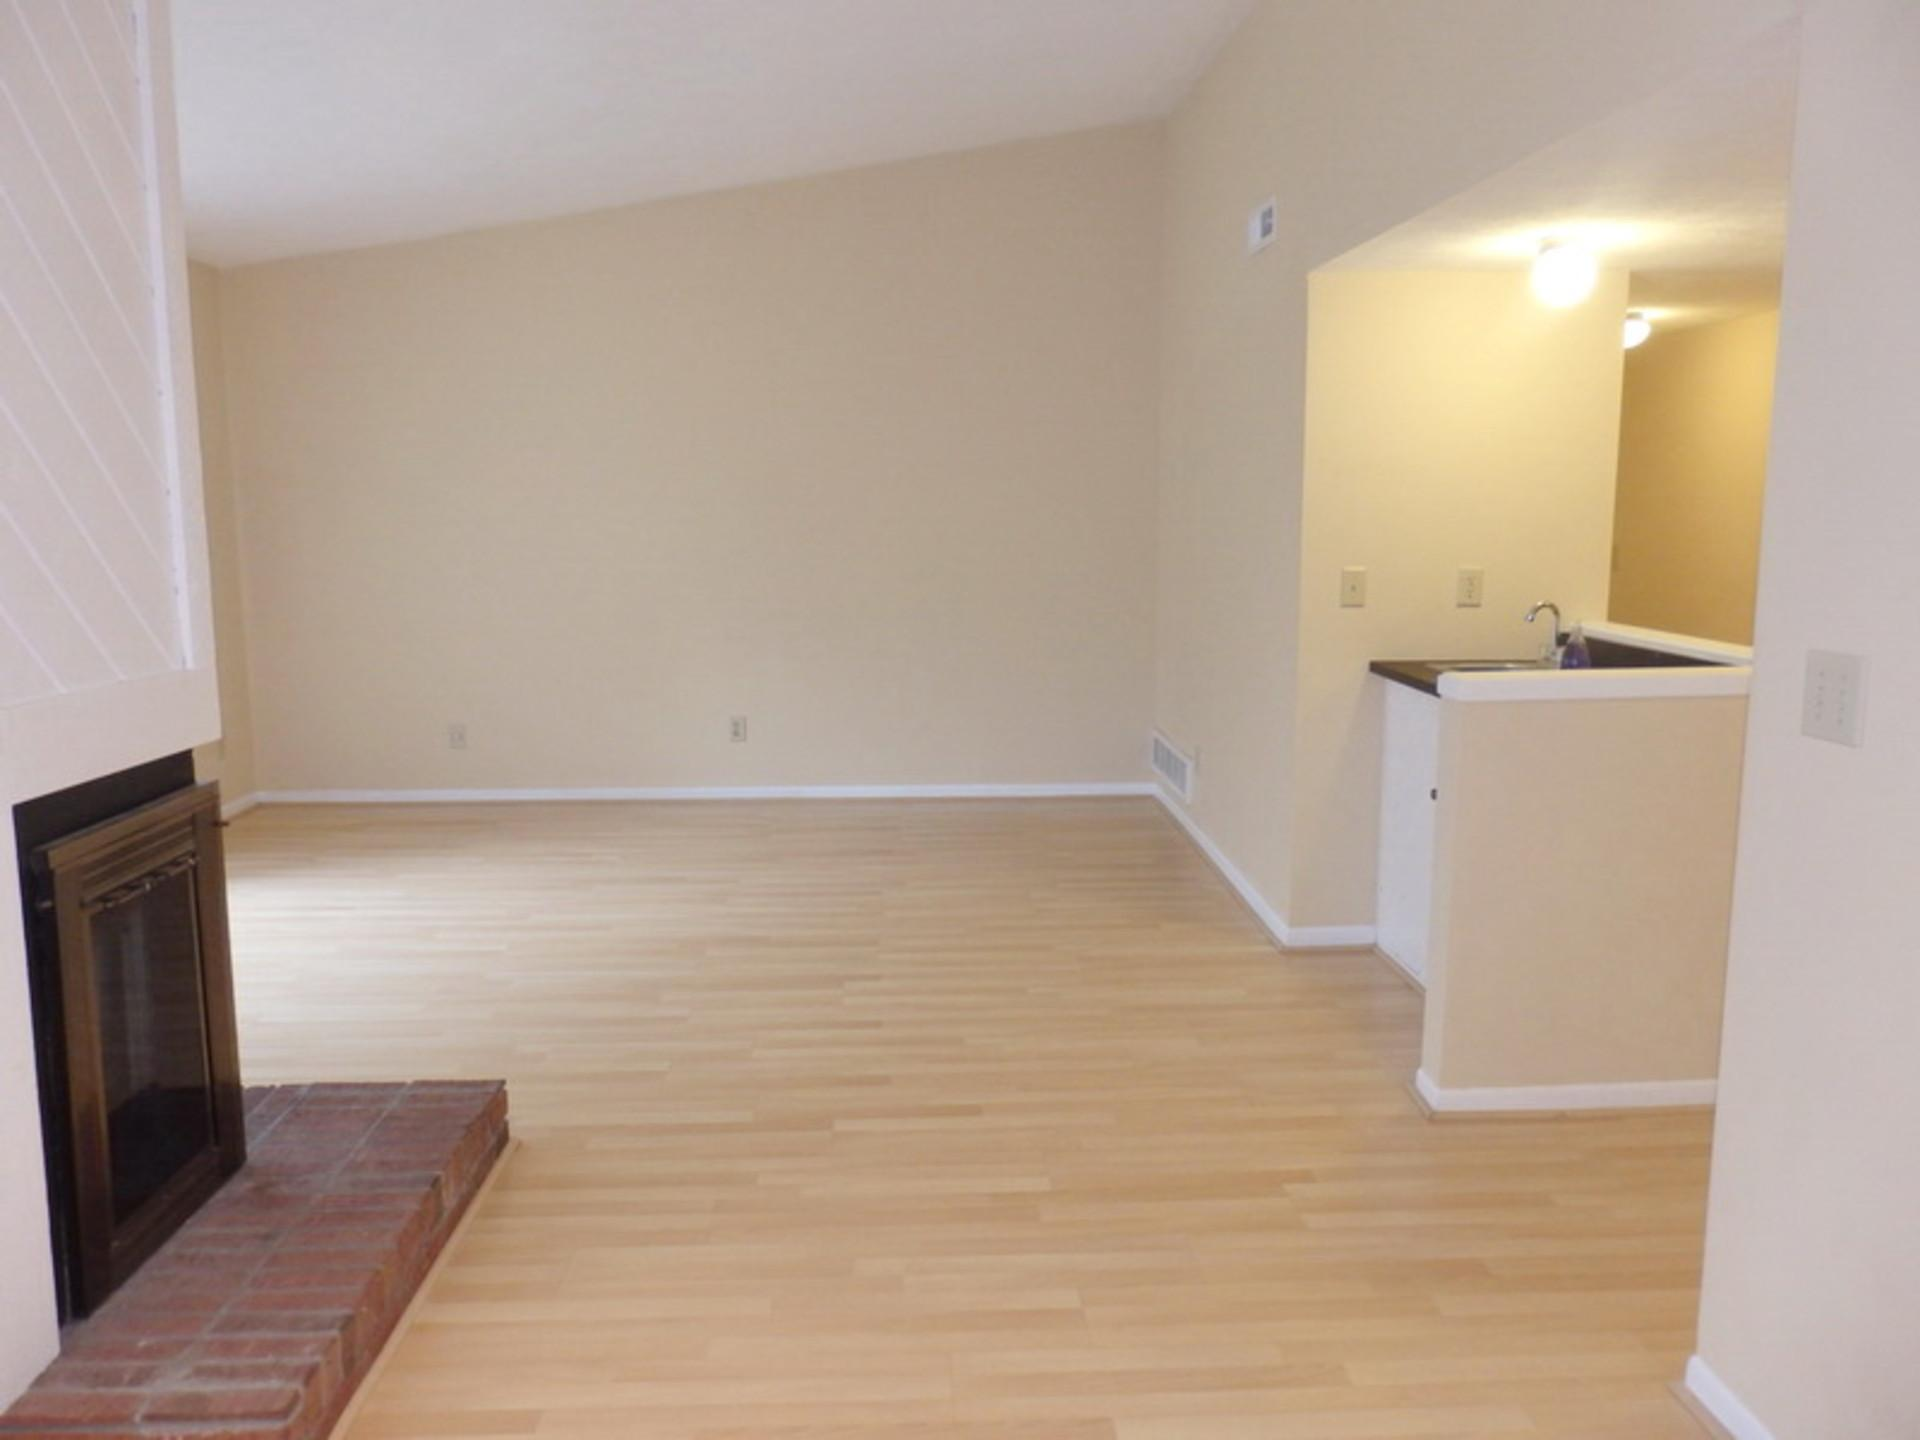 Spacious Two BR Two BA condo in Kenwood